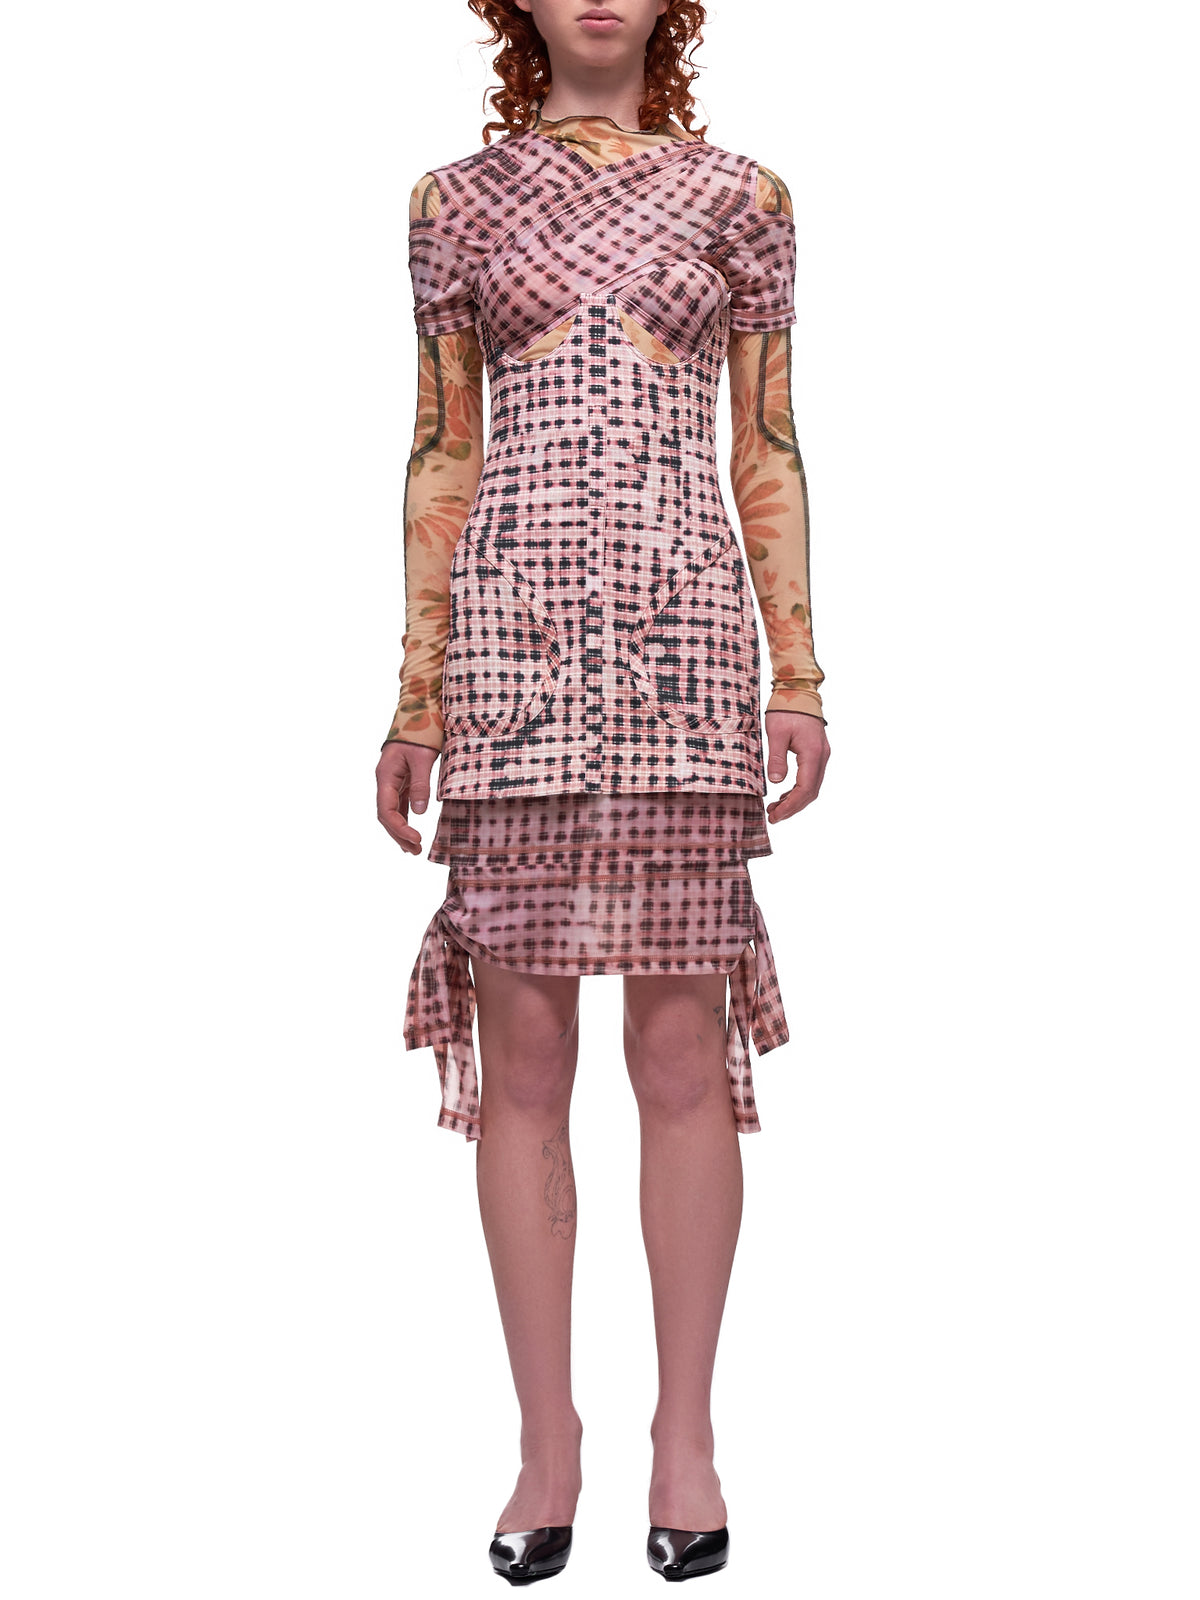 Charlotte Knowles Dress | H.Lorenzo Front